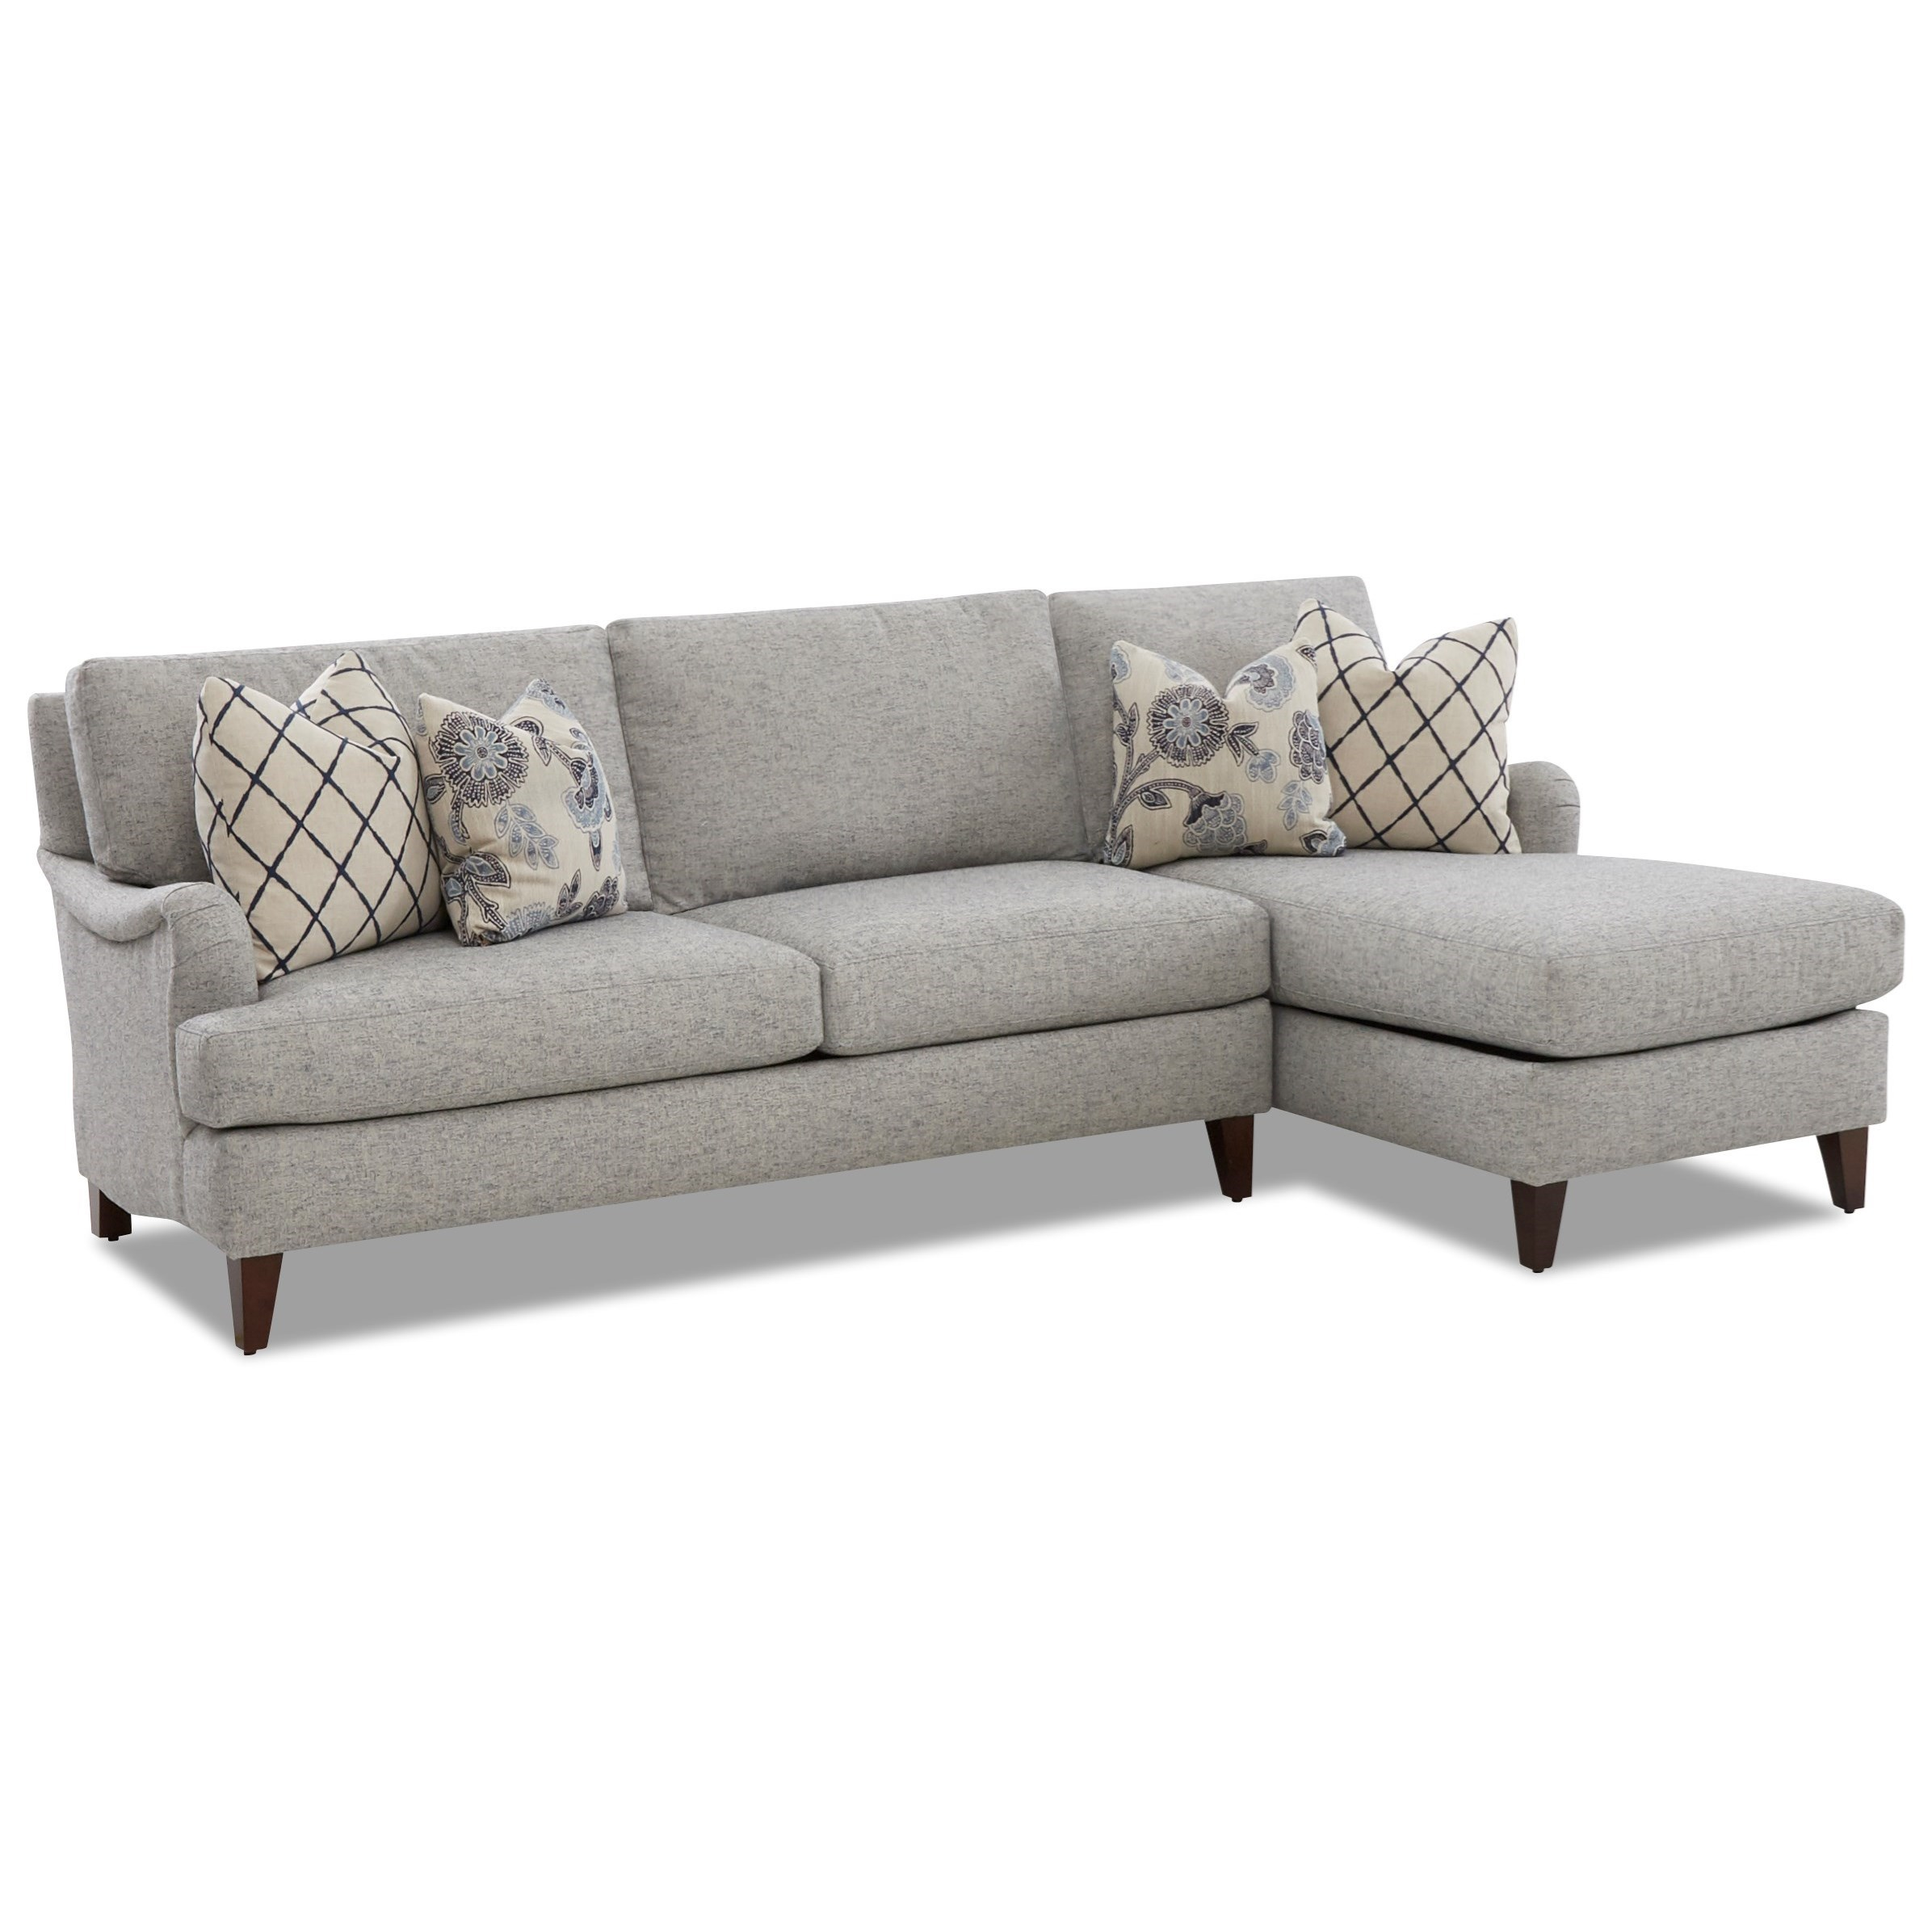 Alden Sofa Chaise by Klaussner at Pilgrim Furniture City